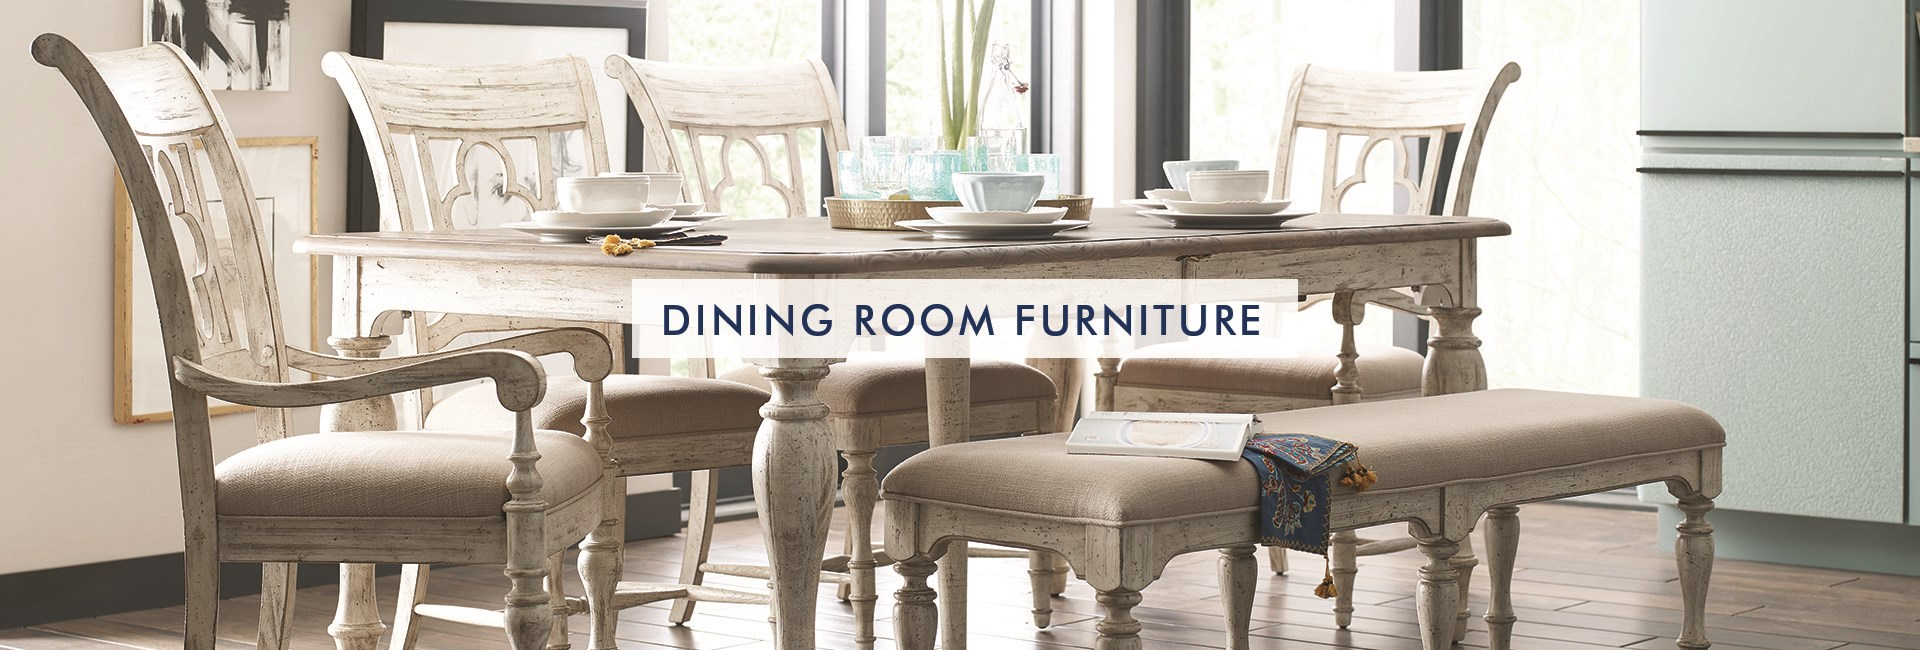 shop dining room furniture at Howell